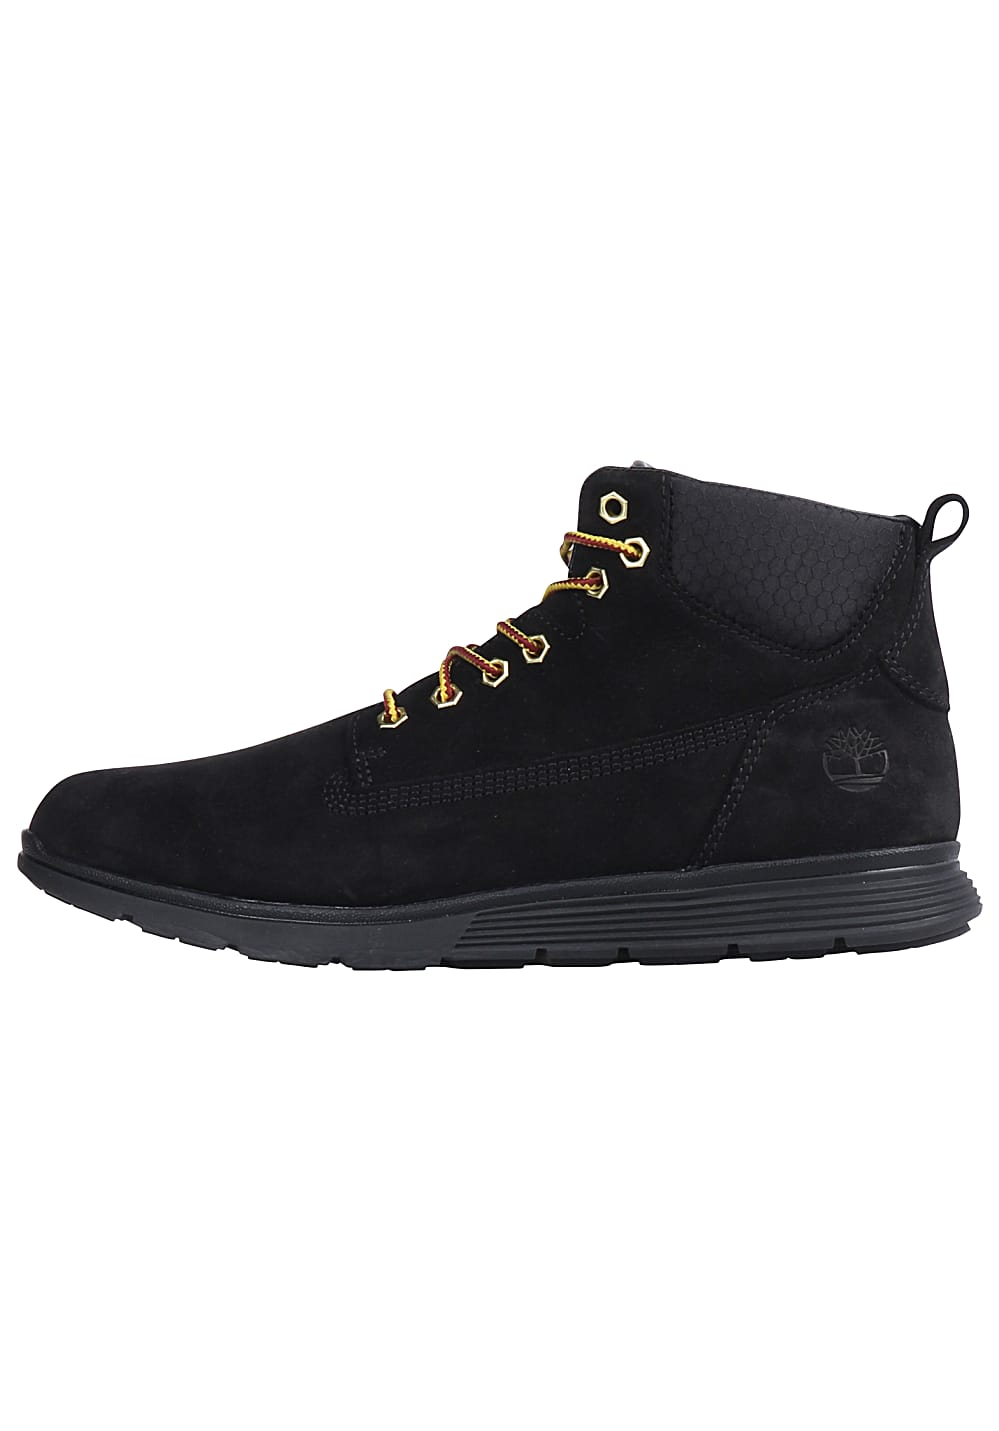 Timberland Killington Chukka - Fashion Schuhe f...